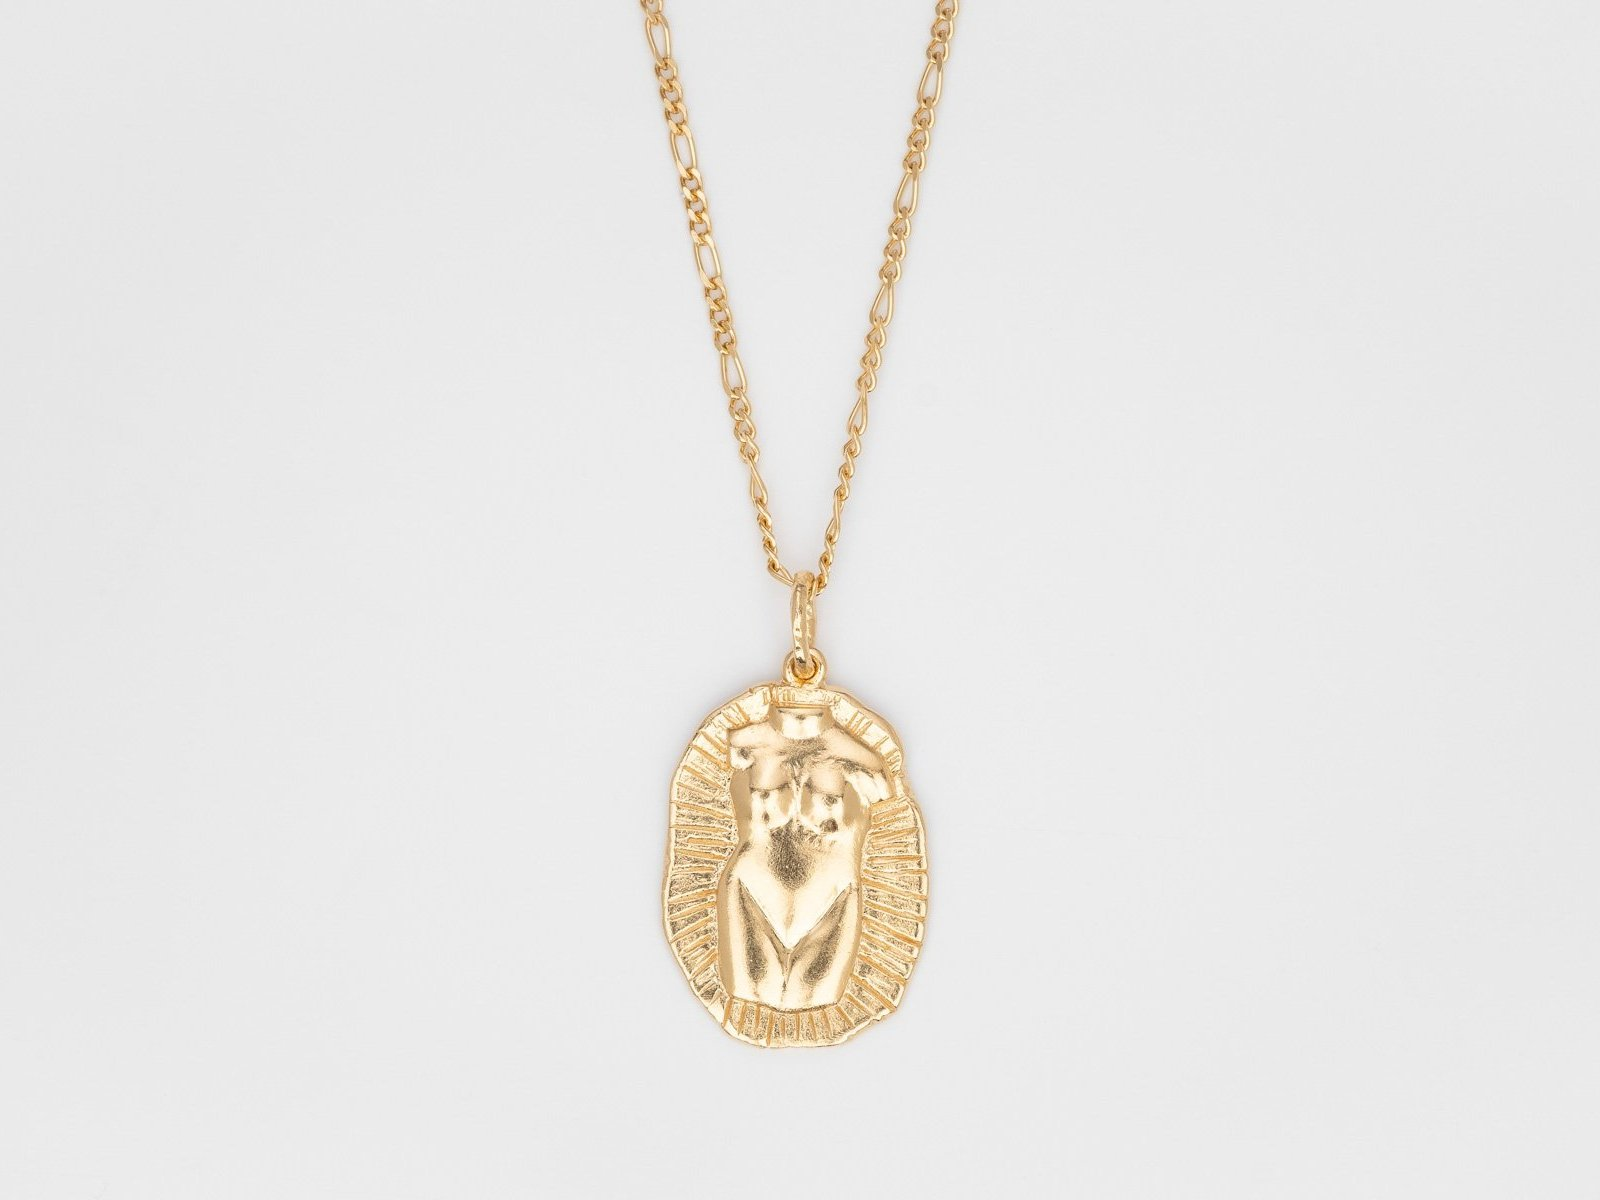 Mother of all mothers Necklace